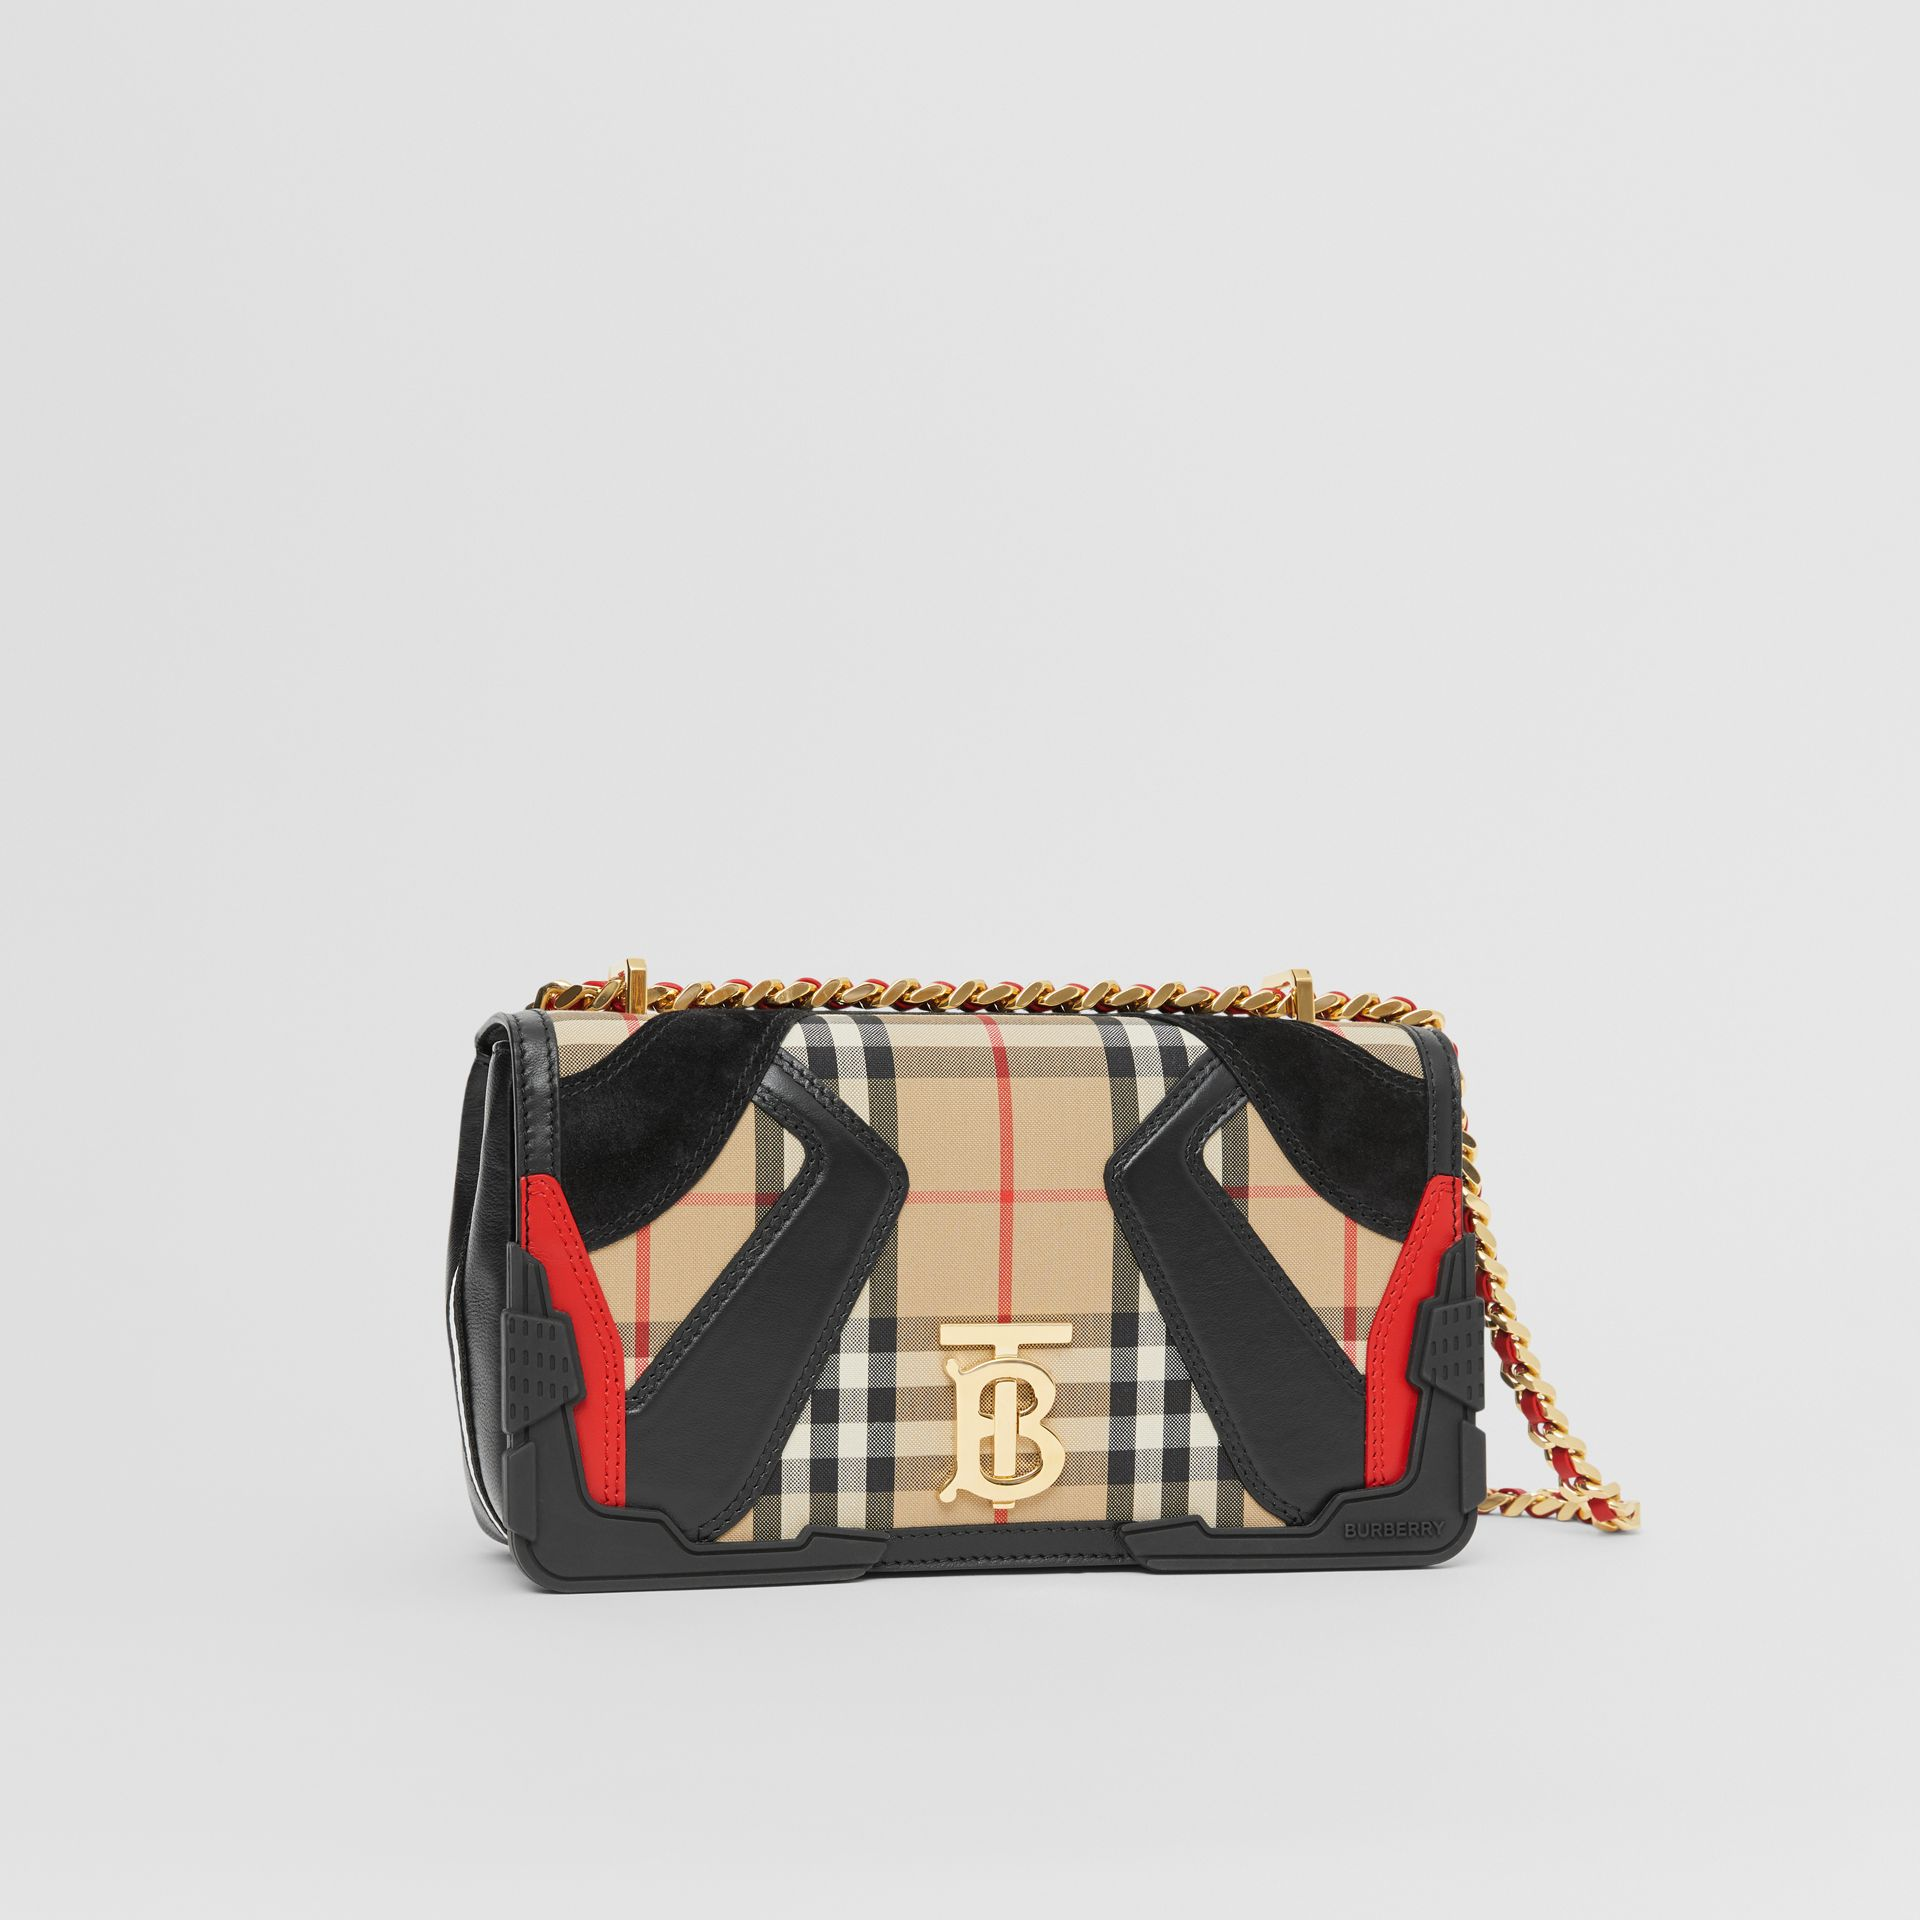 Small Appliqué Vintage Check Lola Bag in Archive Beige - Women | Burberry Australia - gallery image 6